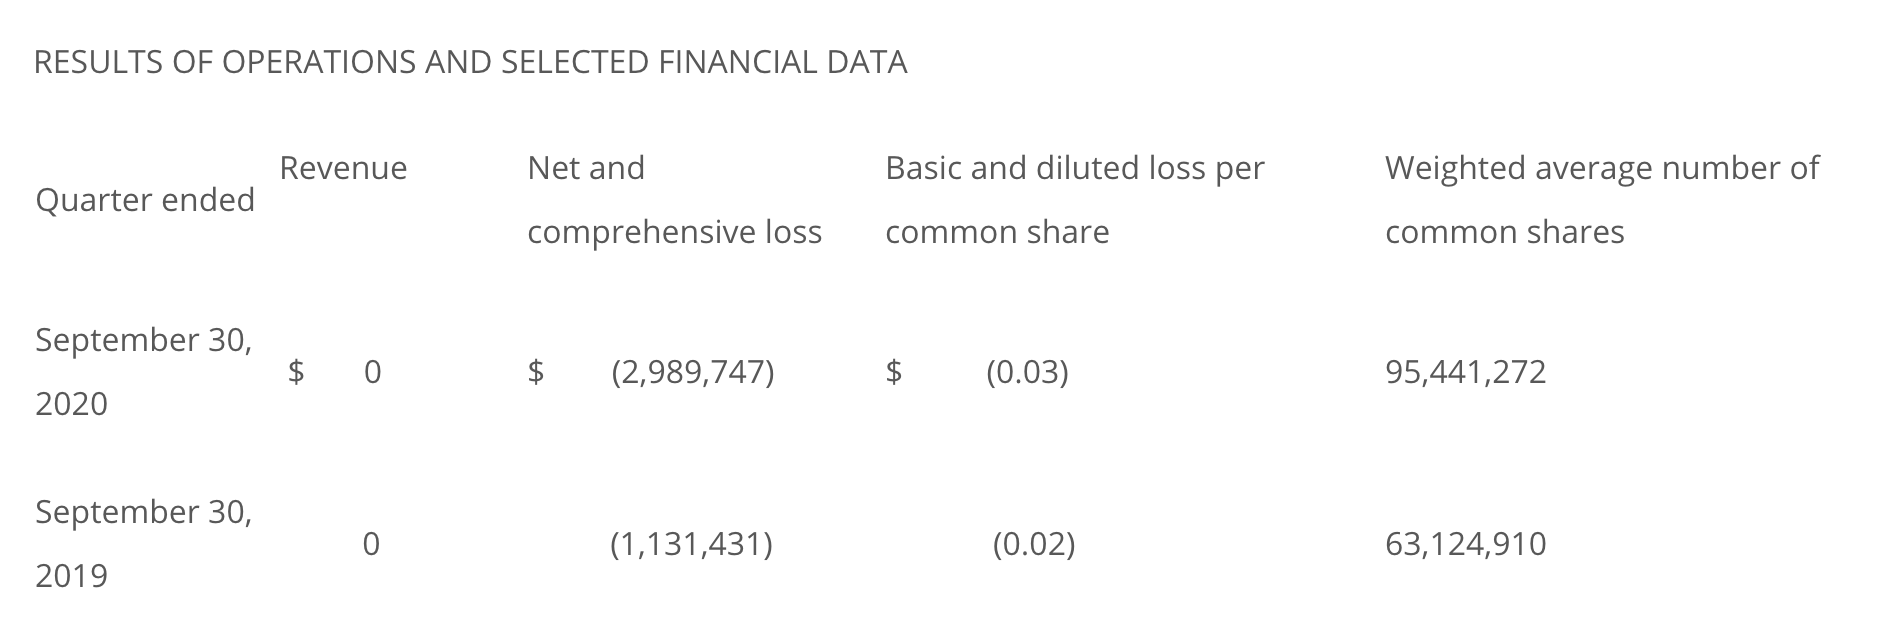 Table of Exro Technologies' financial data, comparing third quarters of 2020 and 2019.